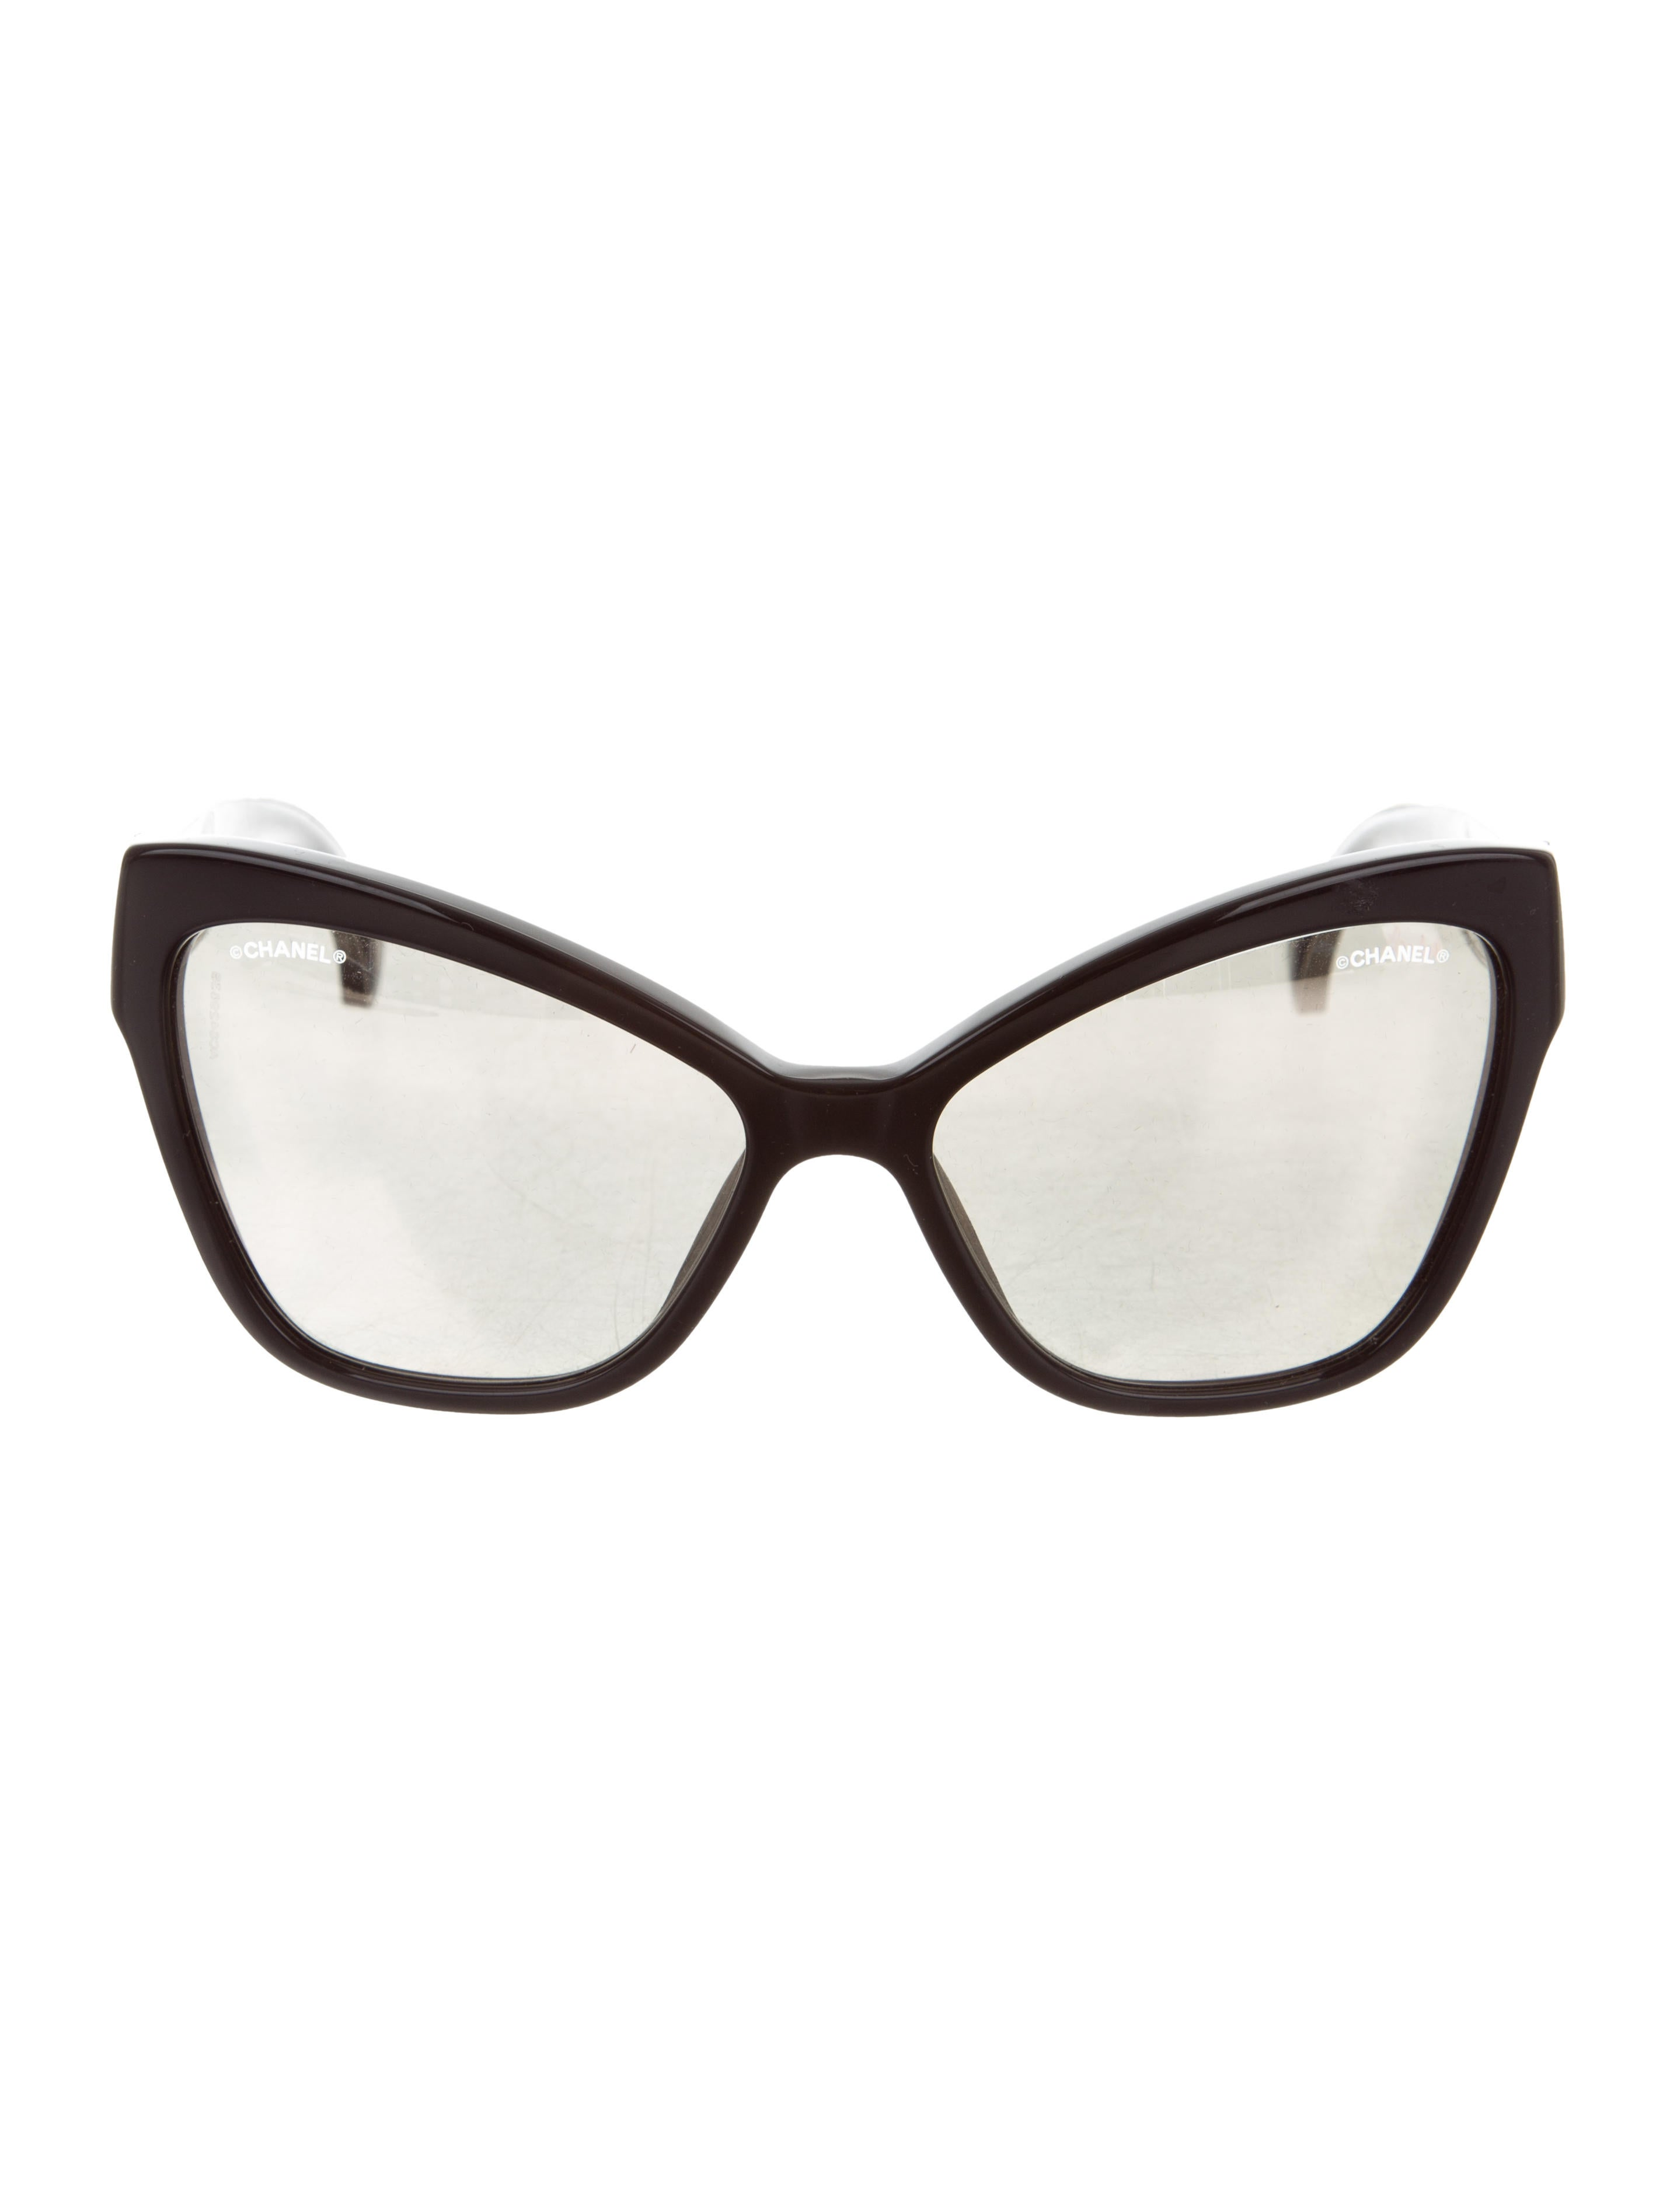 d98c08d94 Chanel CC Cat-Eye Sunglasses - Accessories - CHA226454 | The RealReal